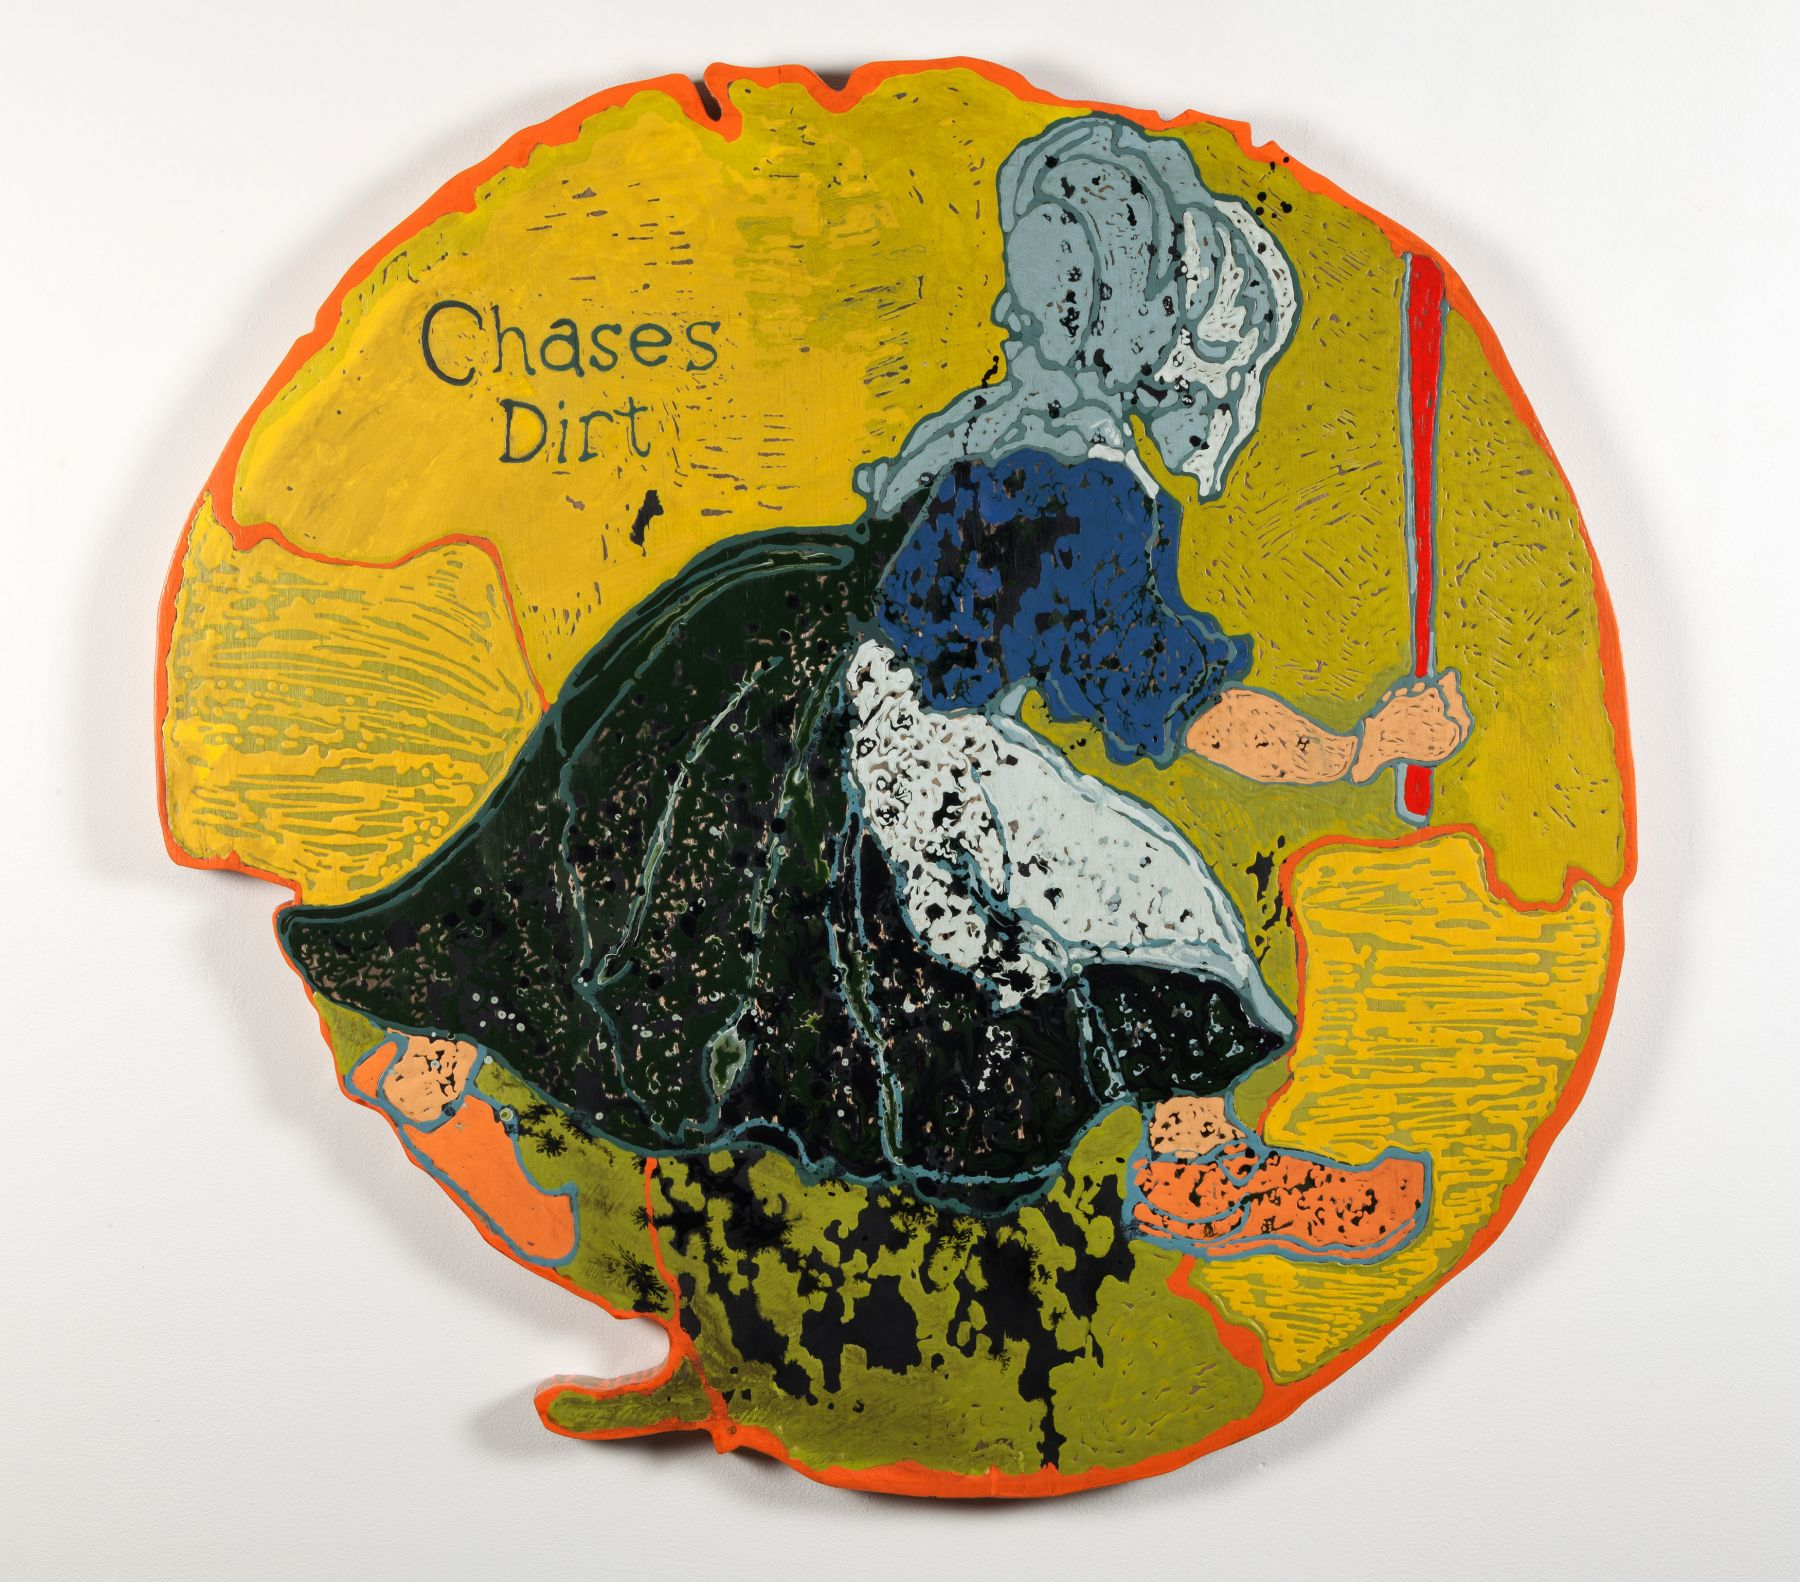 GINA PHILLIPS Chases Dirt, 2014